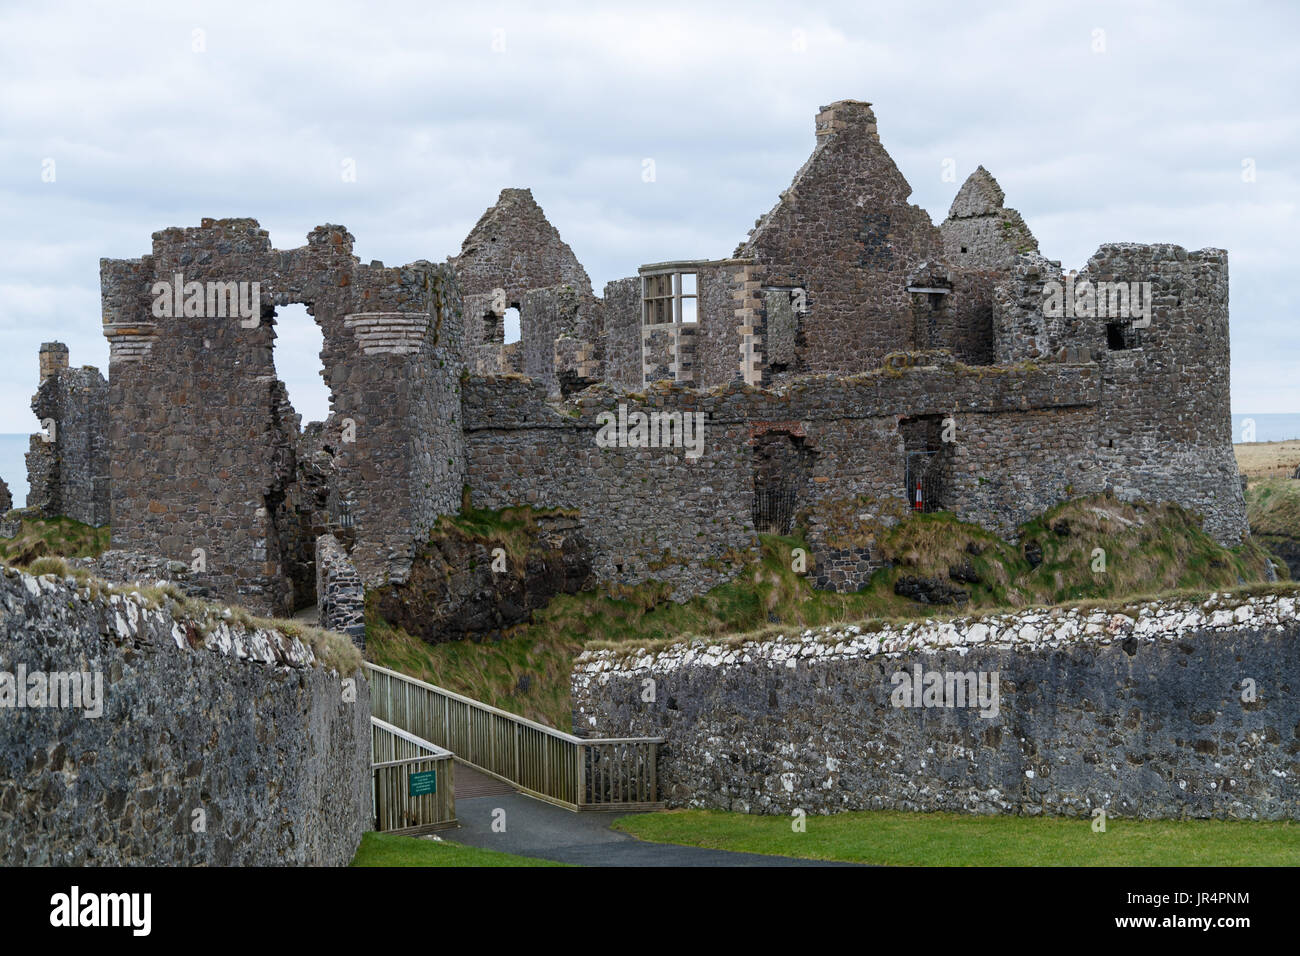 Dunluce Castle, Northern Ireland - Stock Image